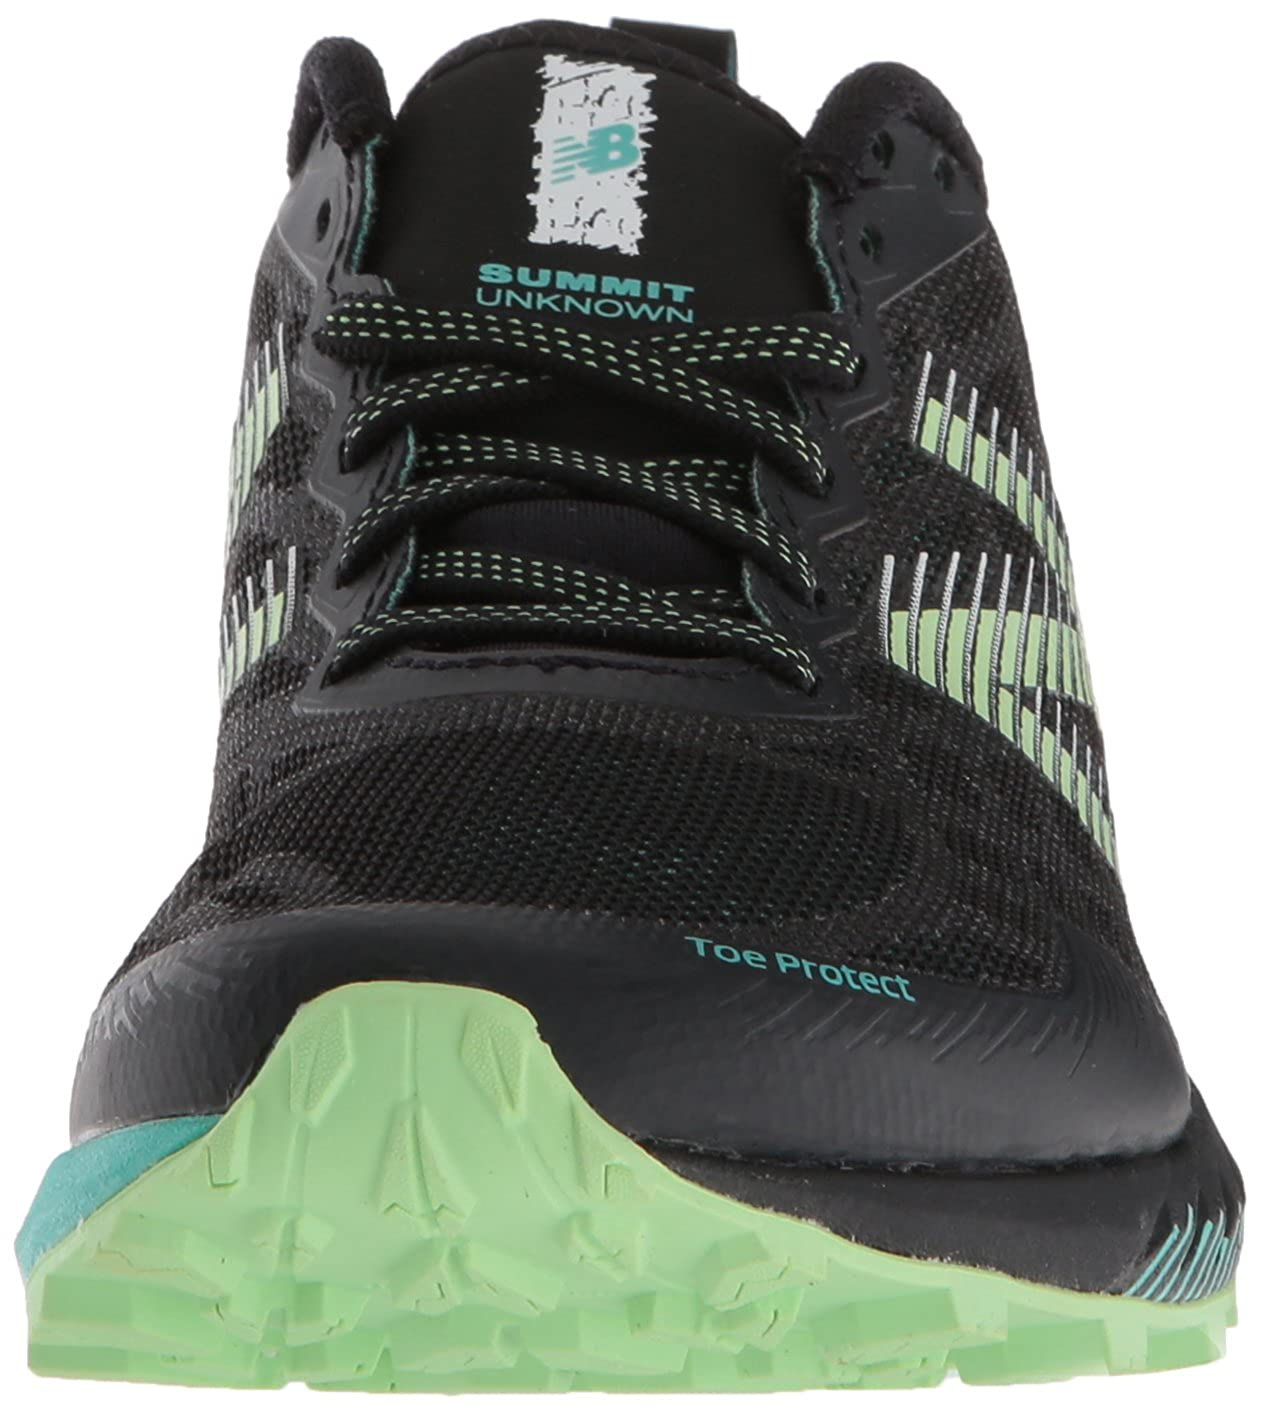 new balance summit unknown damen